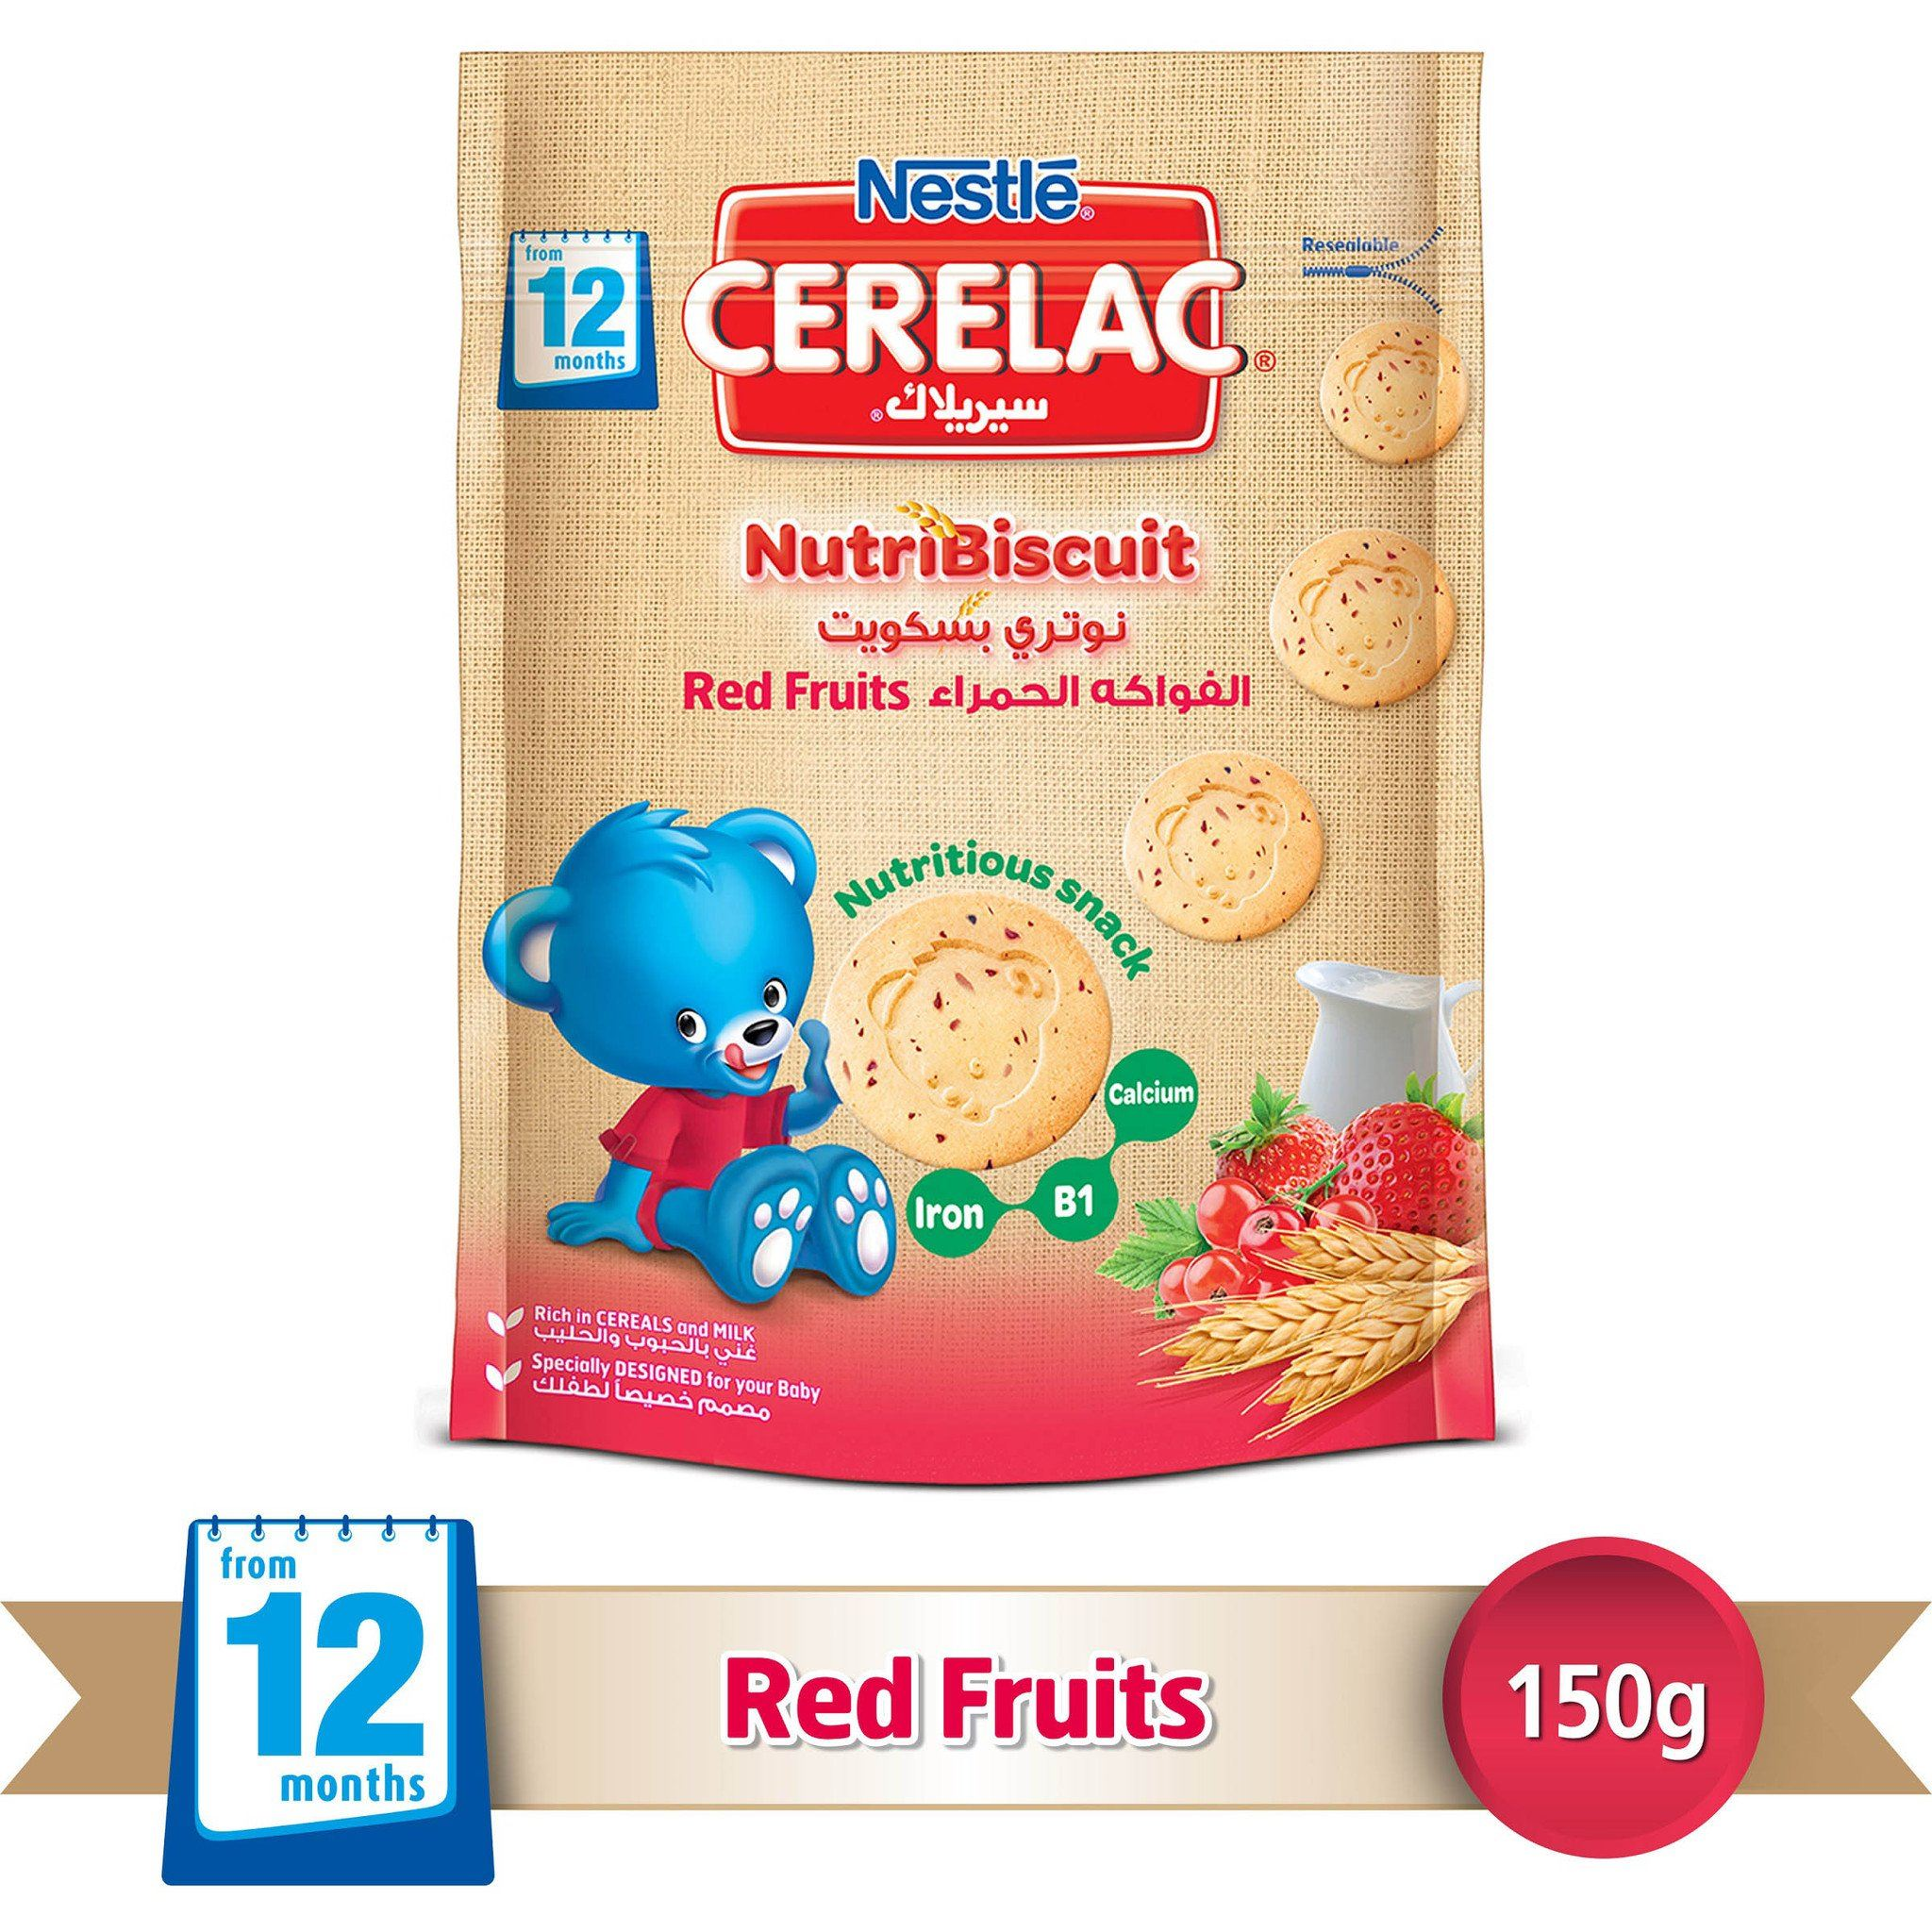 Nestlé® CERELAC® Nutribiscuit™ from 12 Months, Red Fruits Bag 150g - Sanadeeg